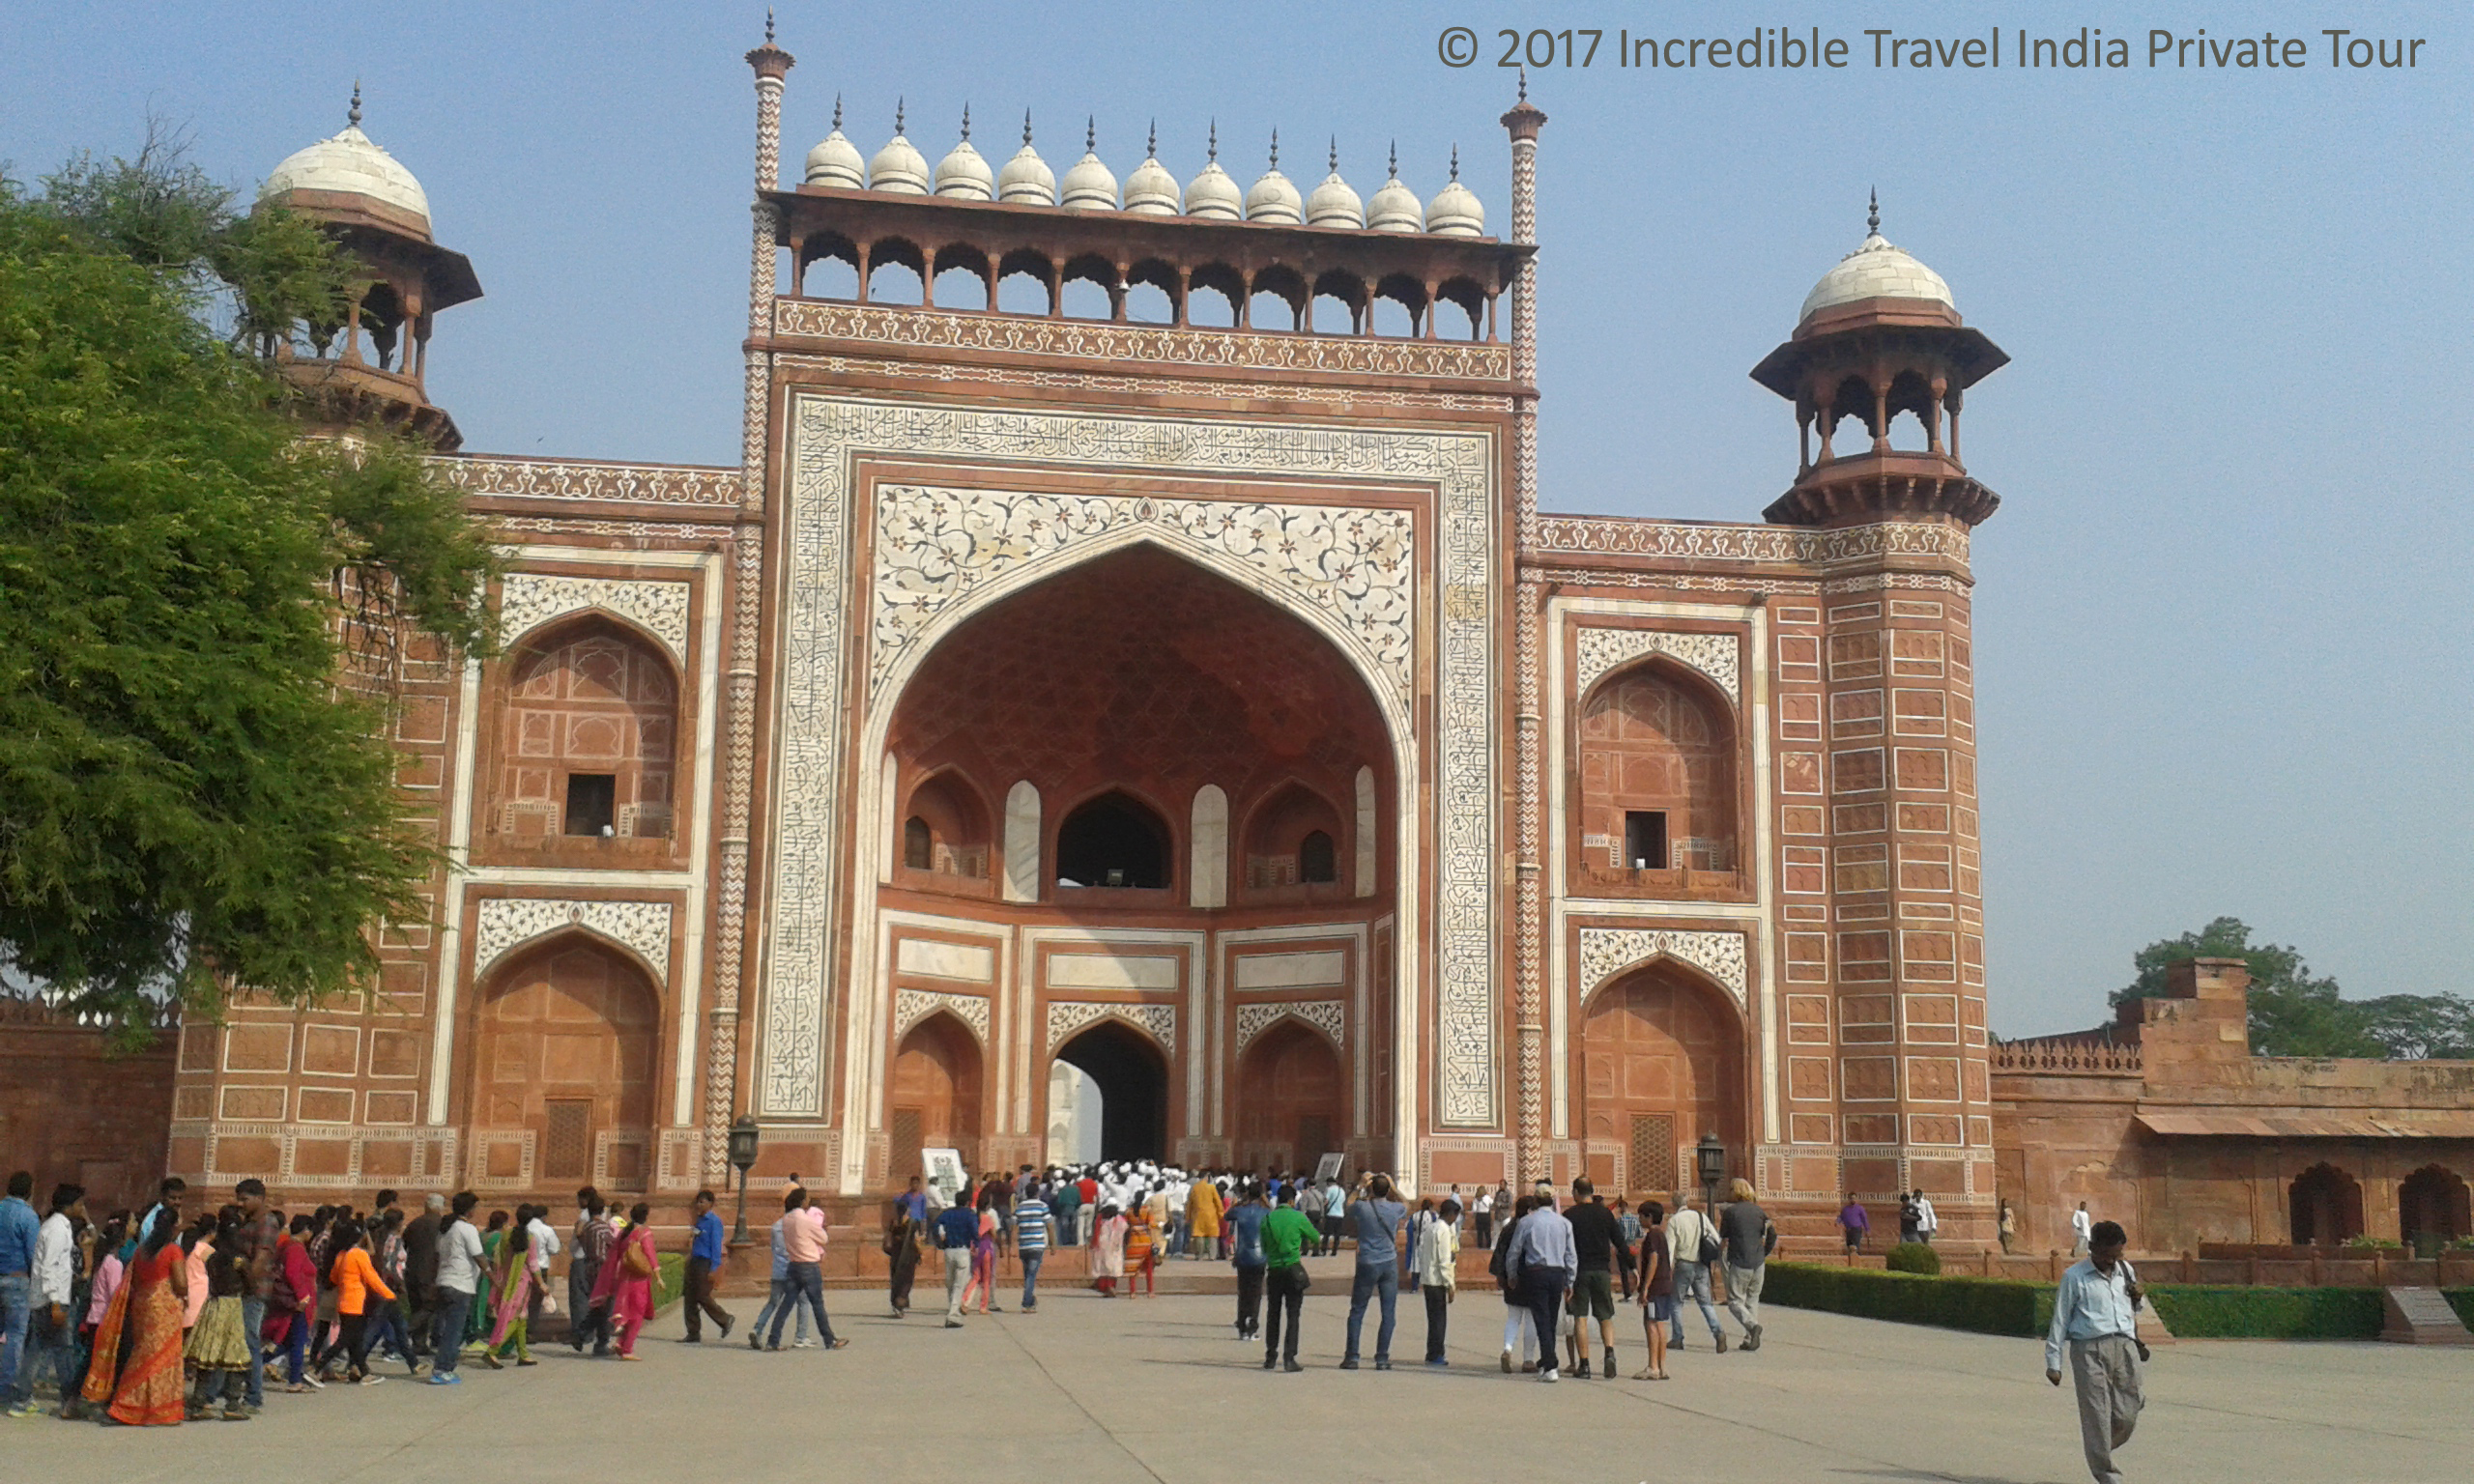 agra_india_tour_packages_©_2017_Incredible_Travel_India_Private_Tour